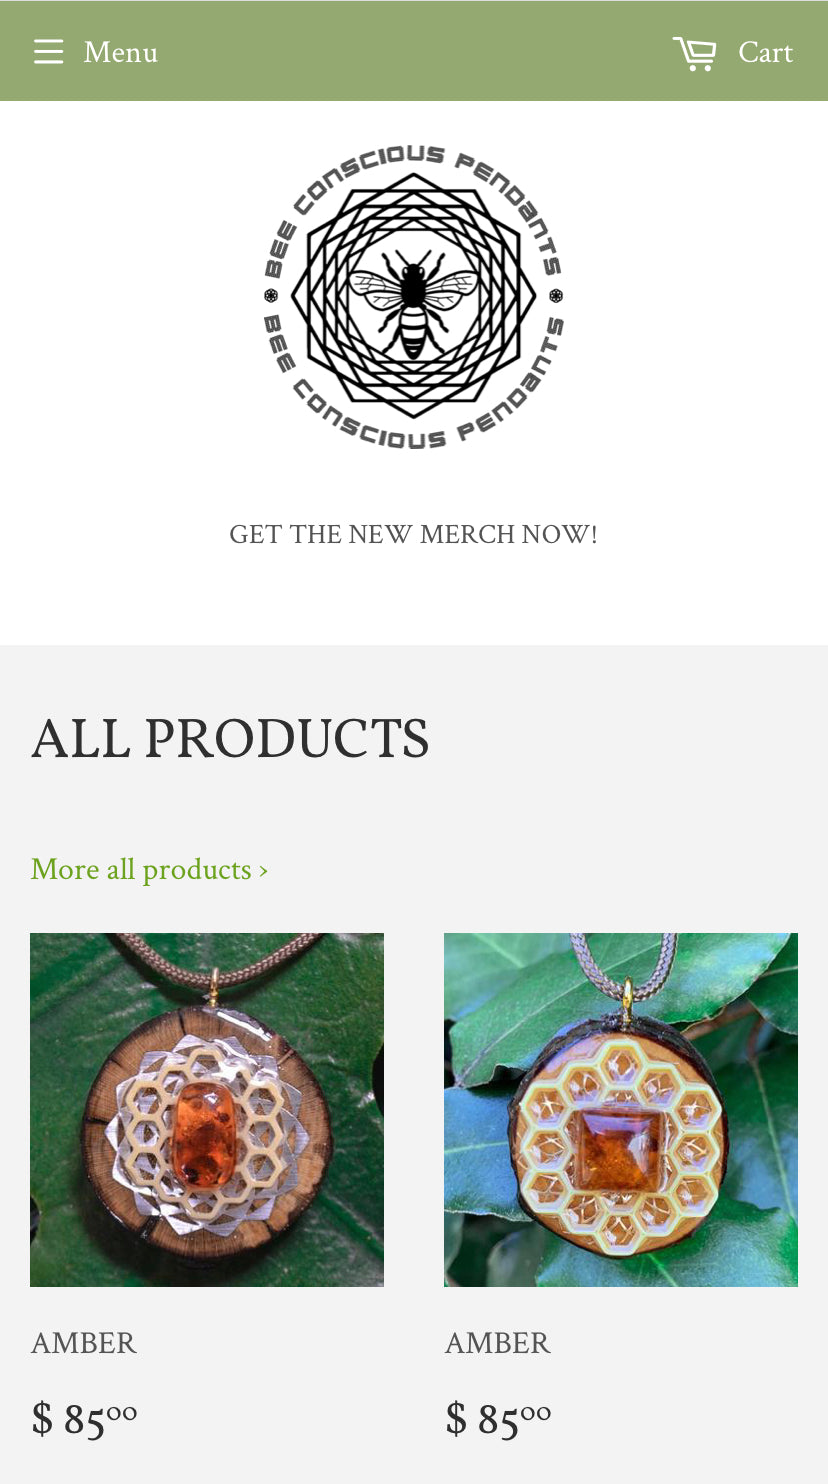 BEE CONSCIOUS PENDANTS For Sale | Buy an Online Business